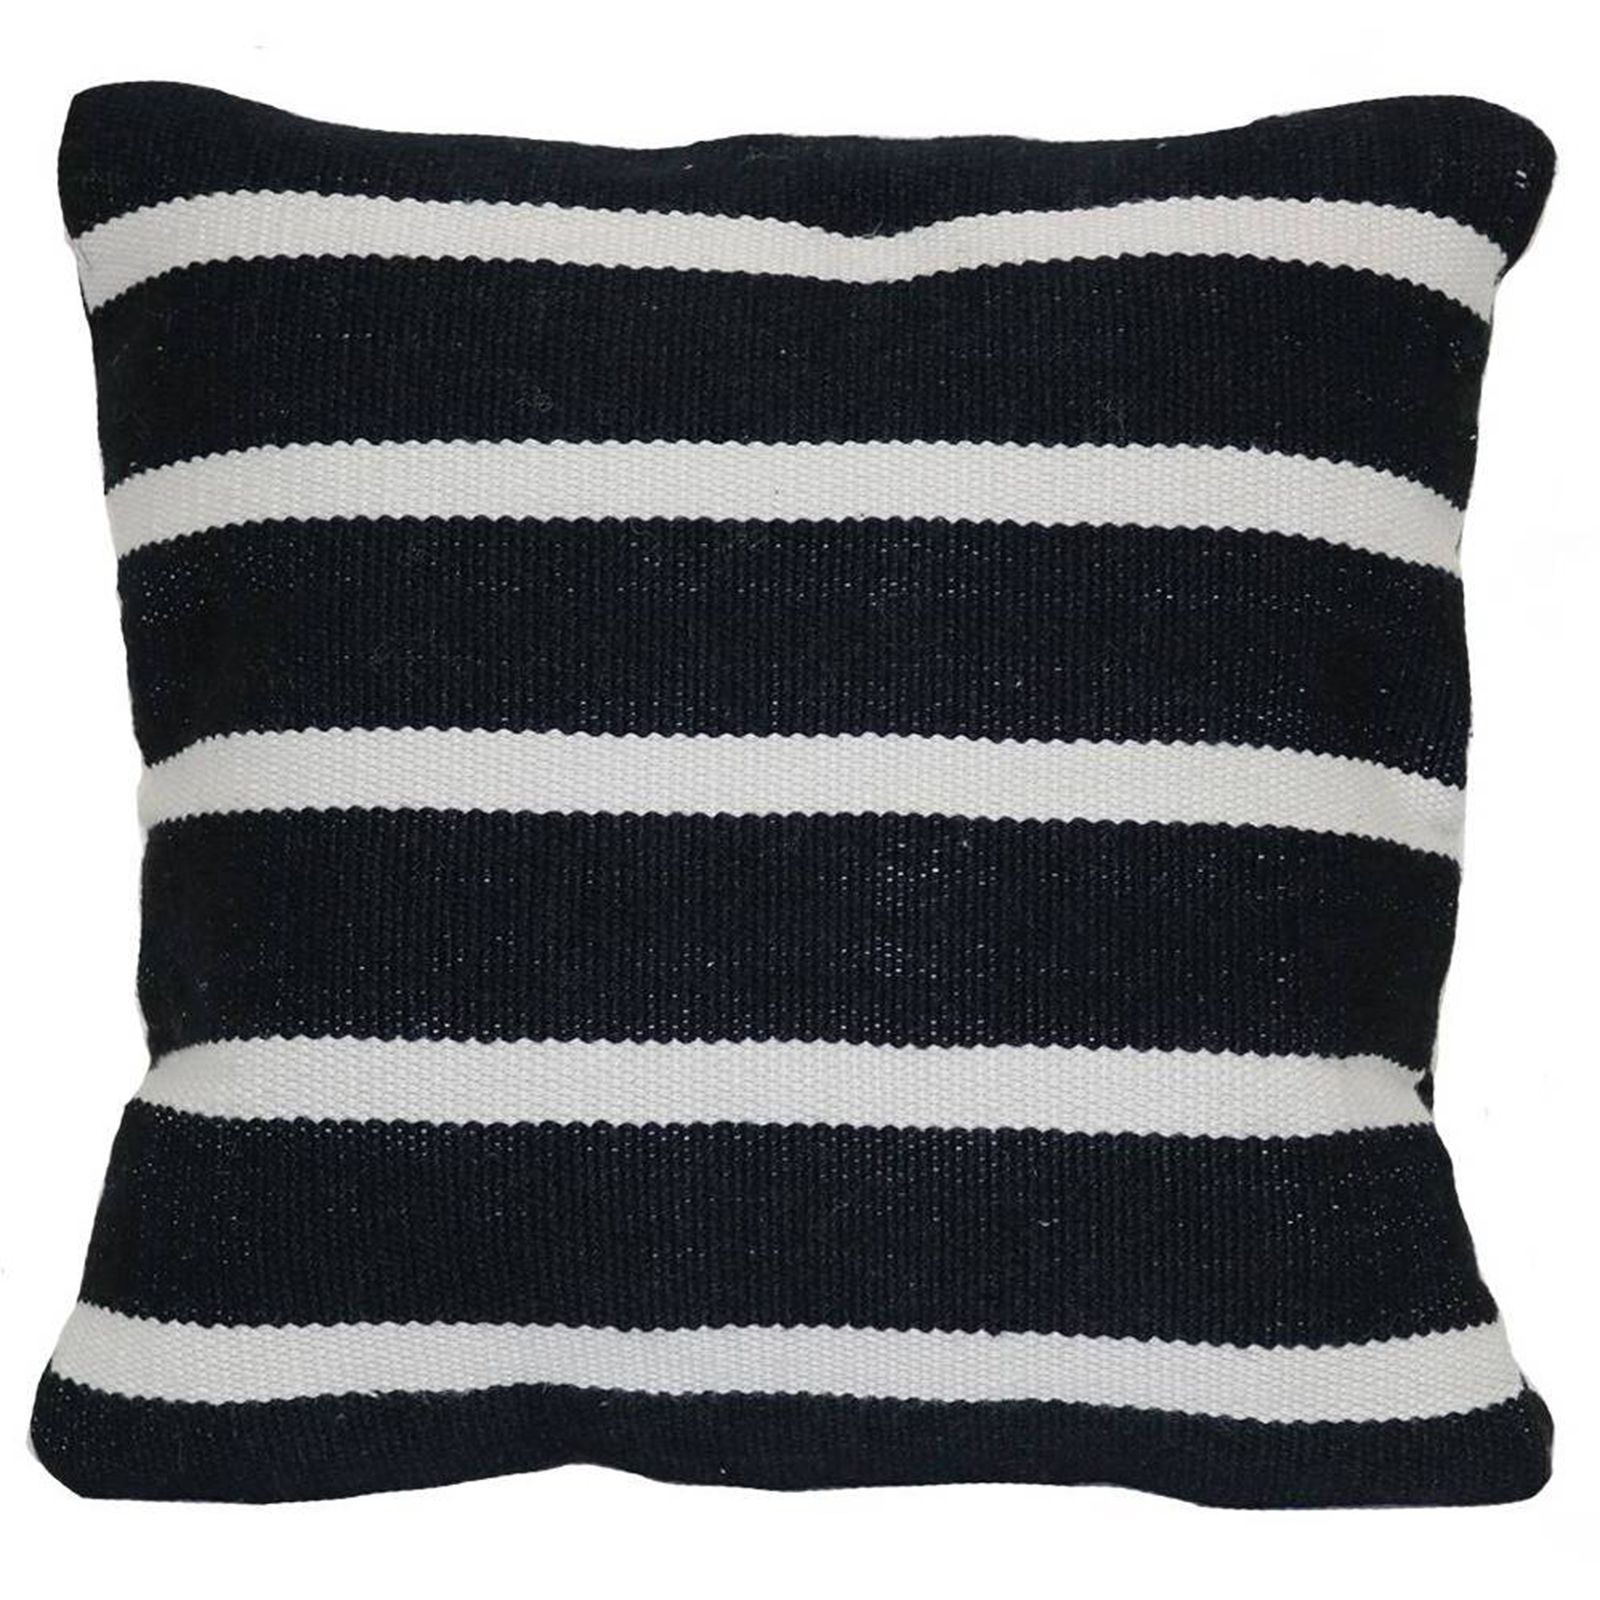 Fabulous Black + White Outdoor Finds at Target - Woven Narrow Stripe Pillow